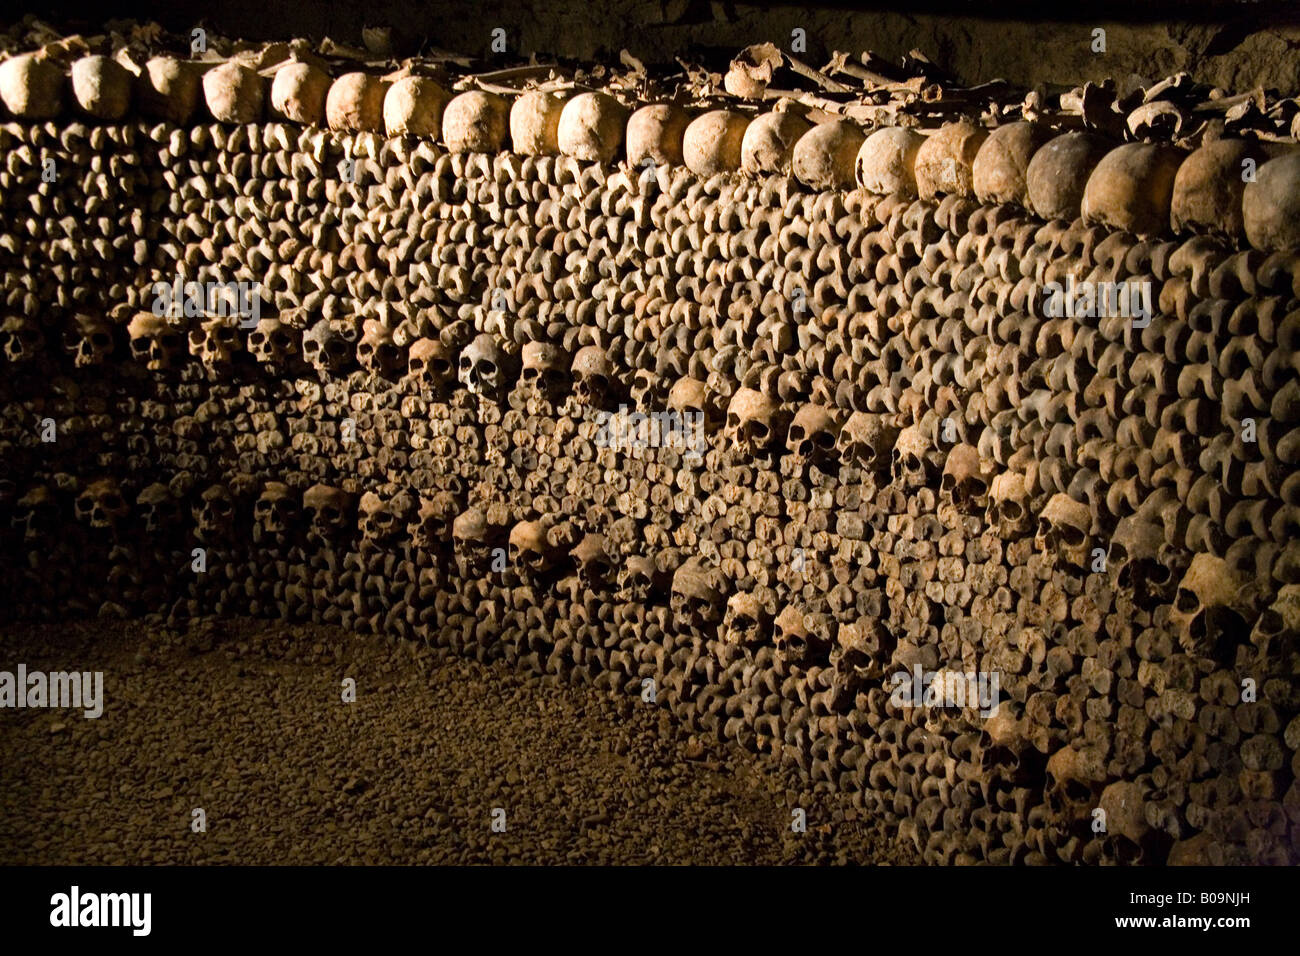 Human skulls and bones stacked in rows in the underground ...